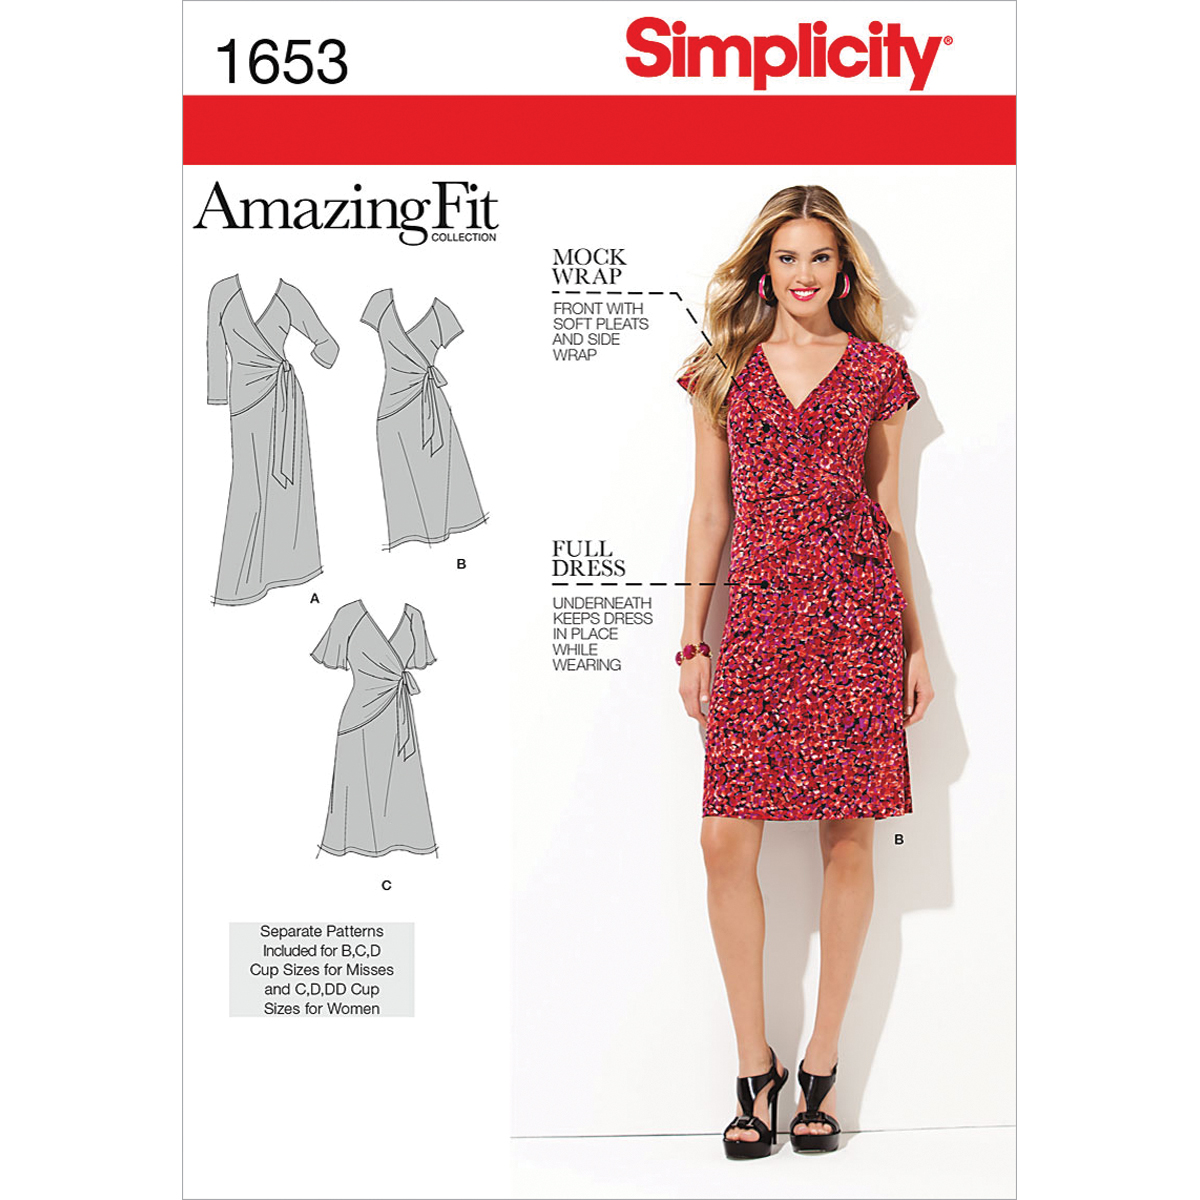 Simplicity Pattern 1653BB 20W-28W -Simplicity Misses Dr